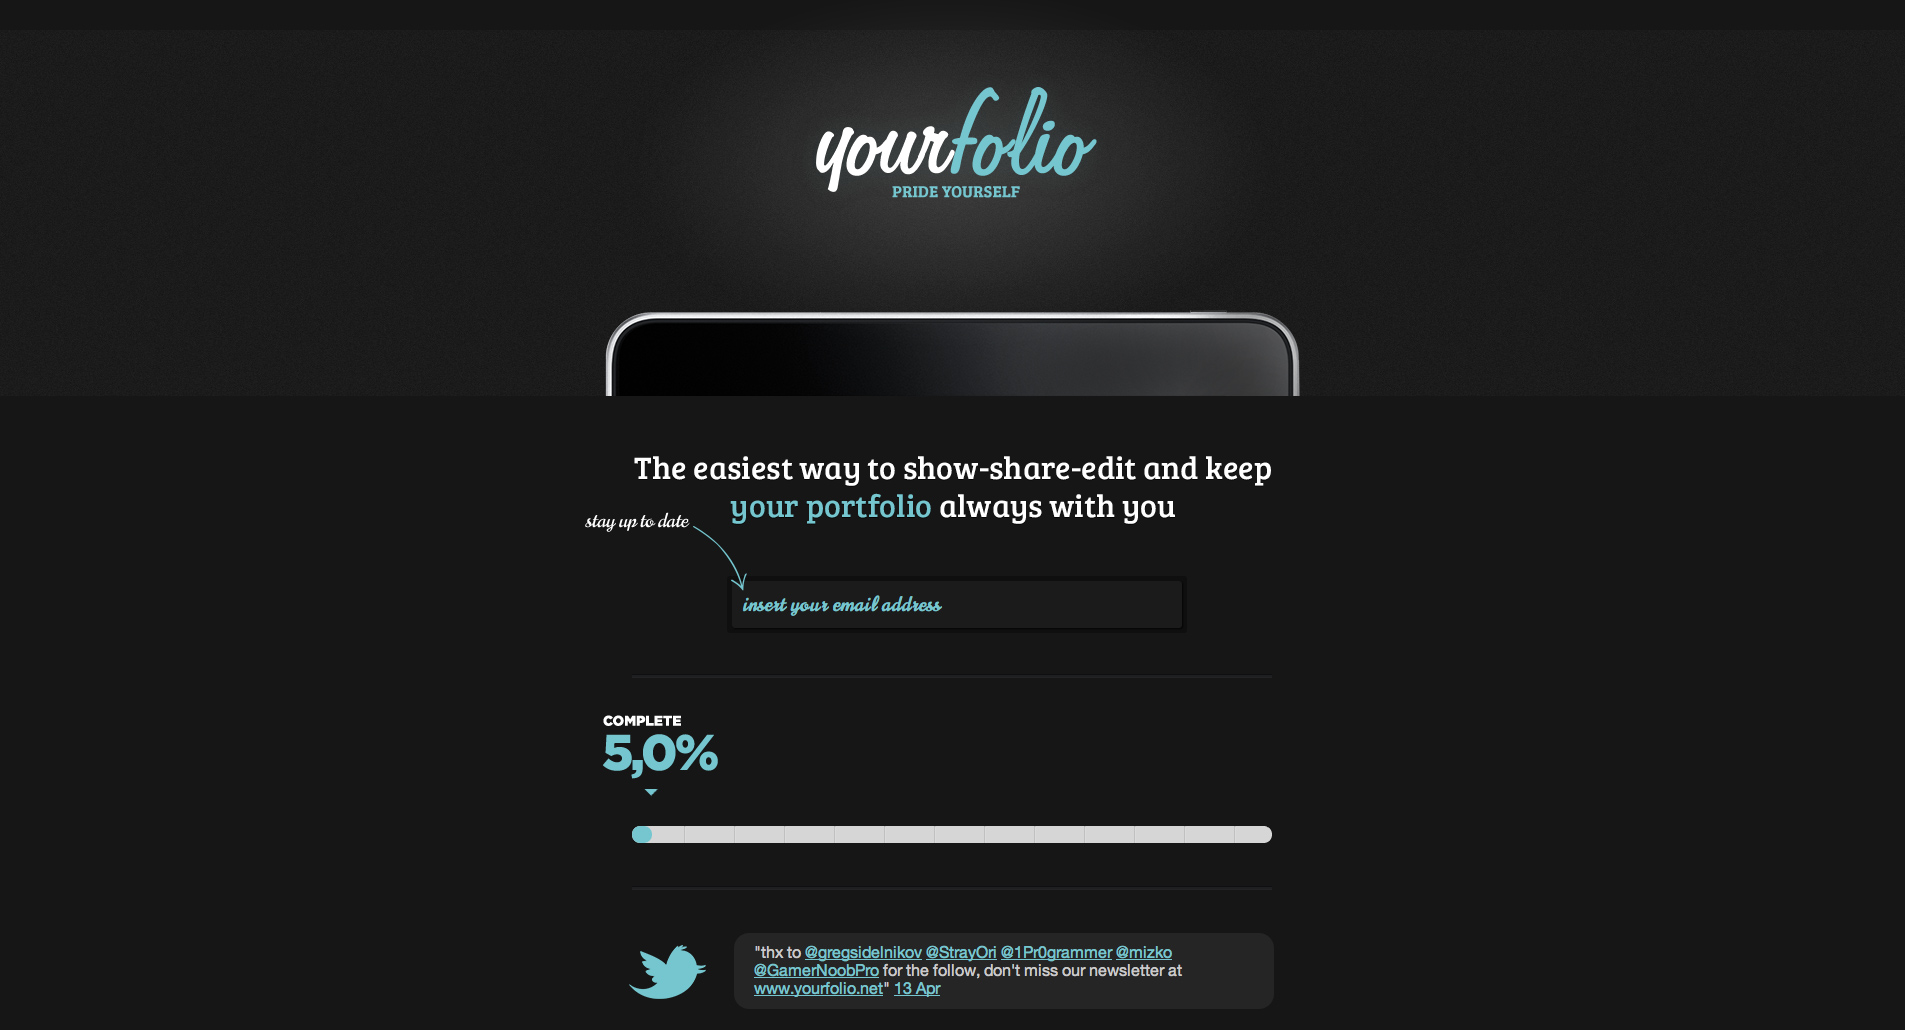 yourfolio Website Screenshot